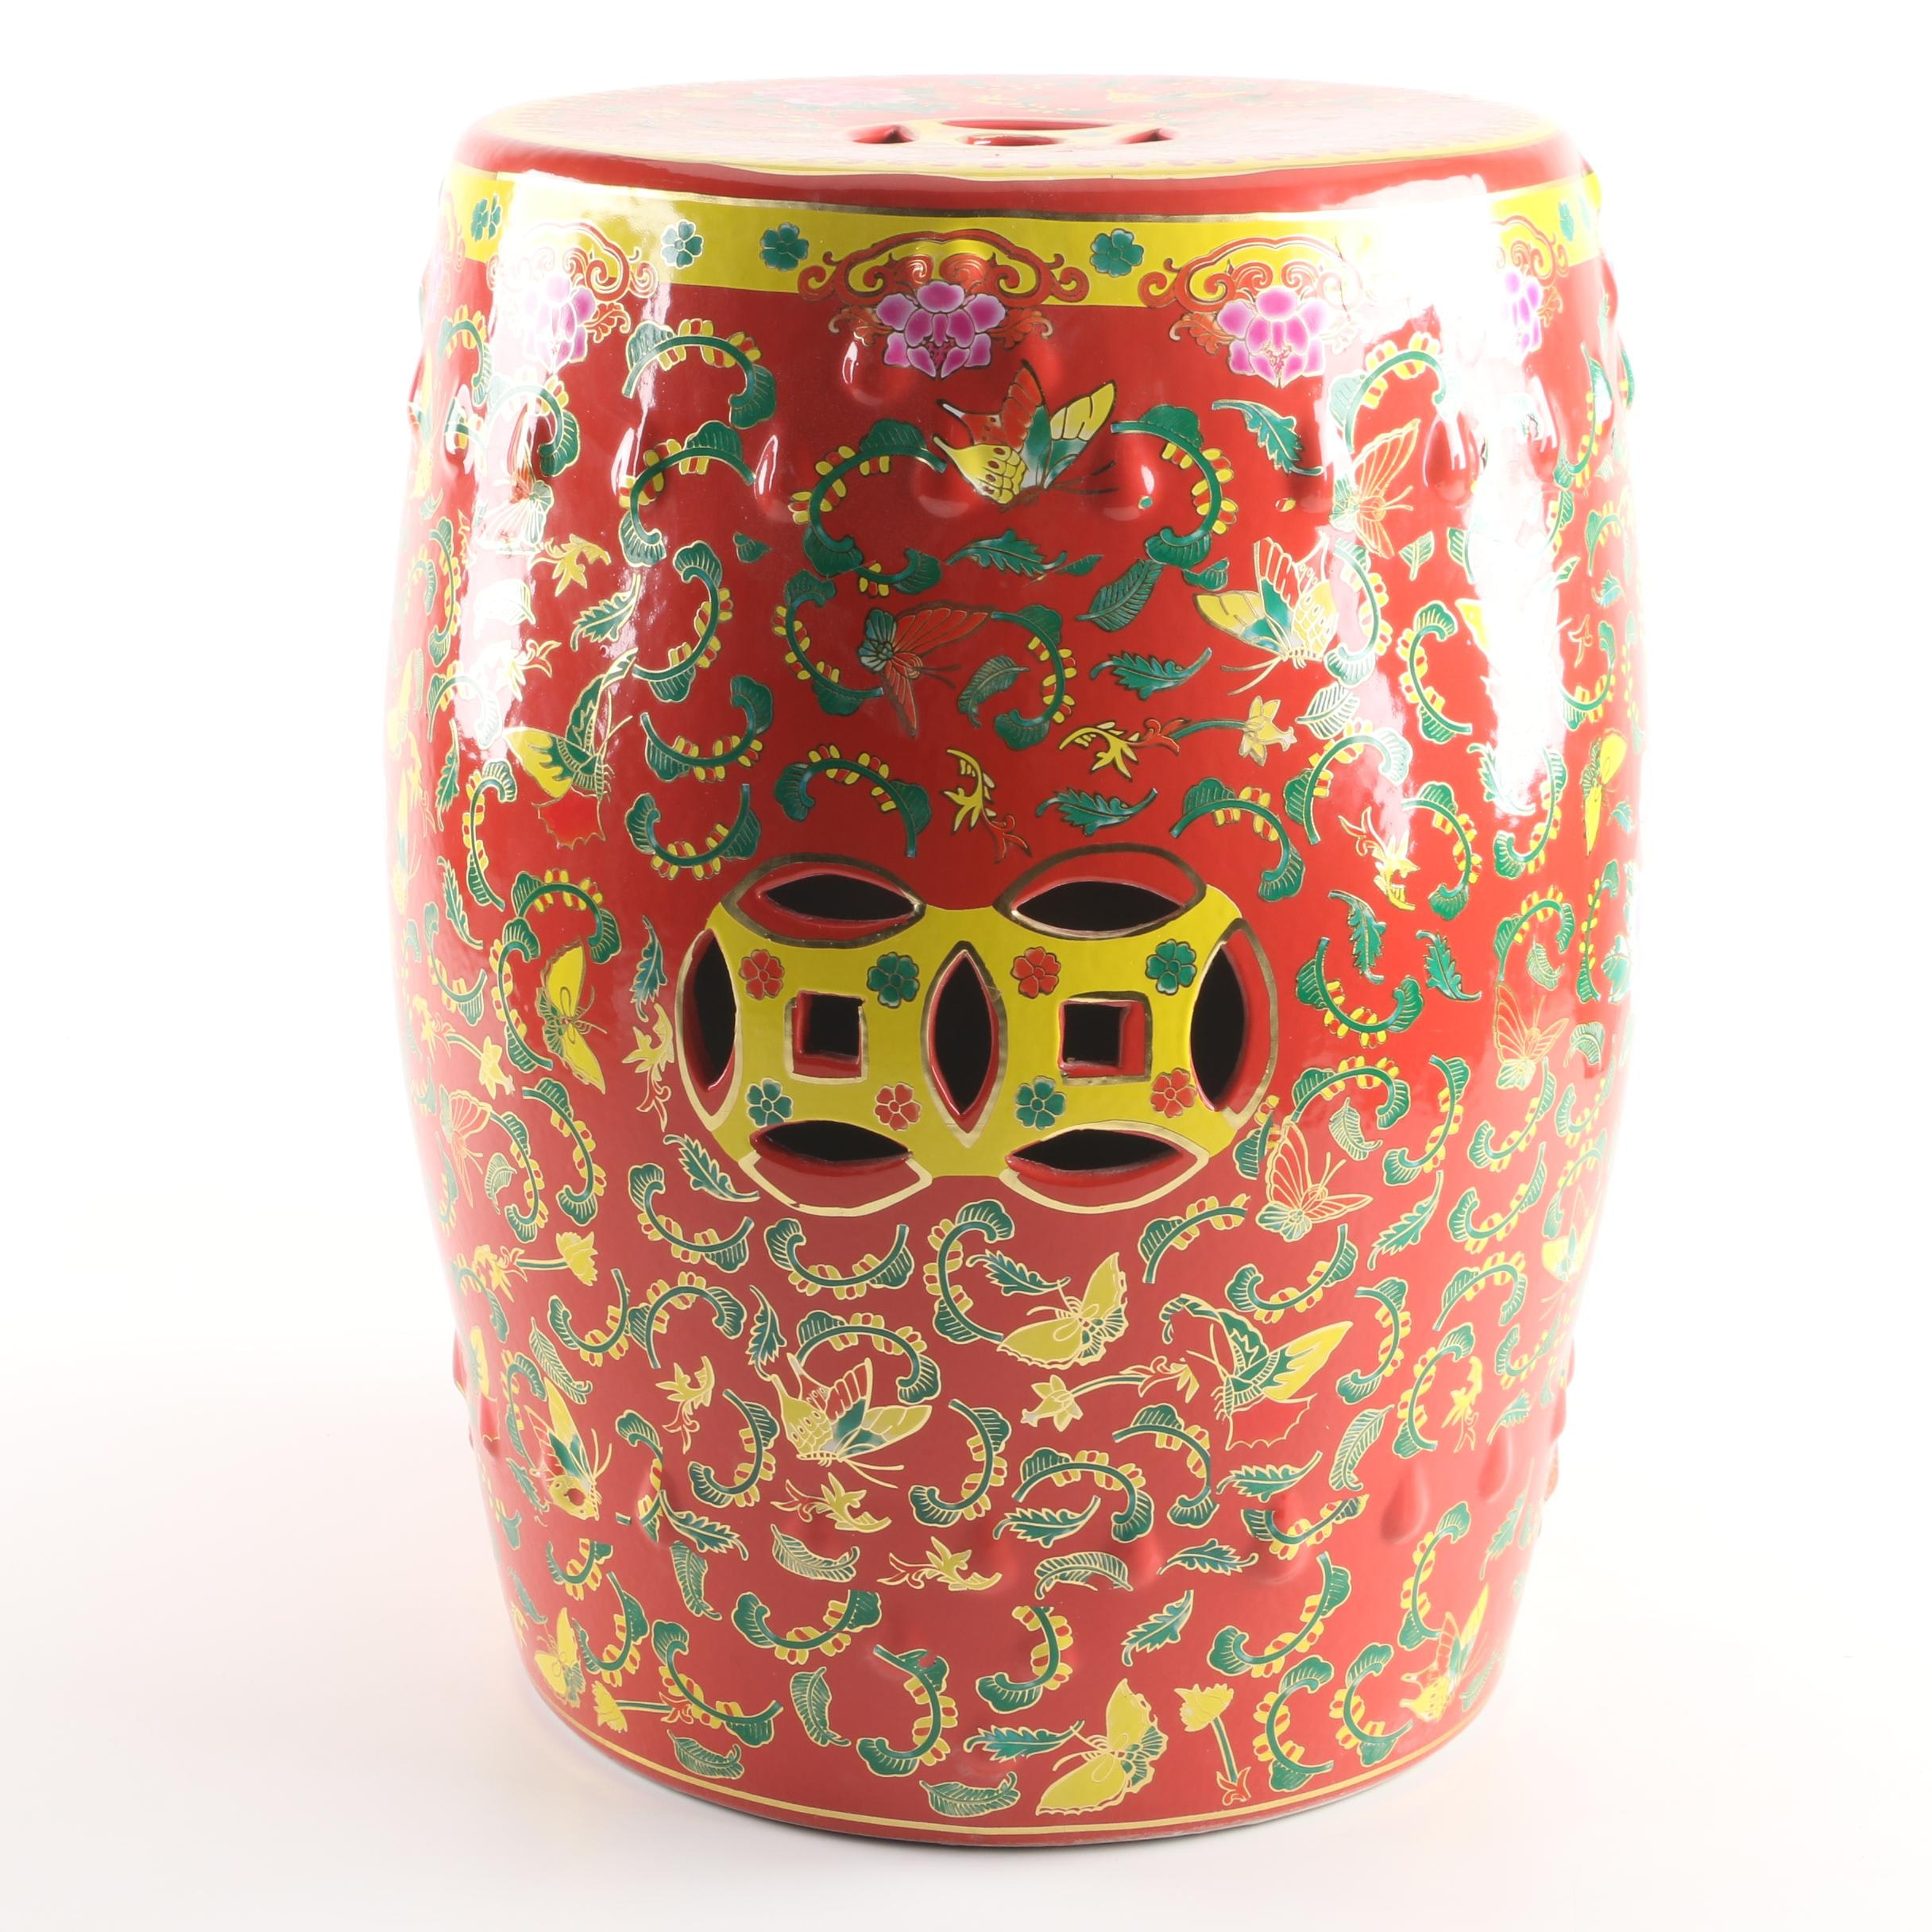 Chinese Red Painted Garden Stool with Hand-Painted Floral Motif